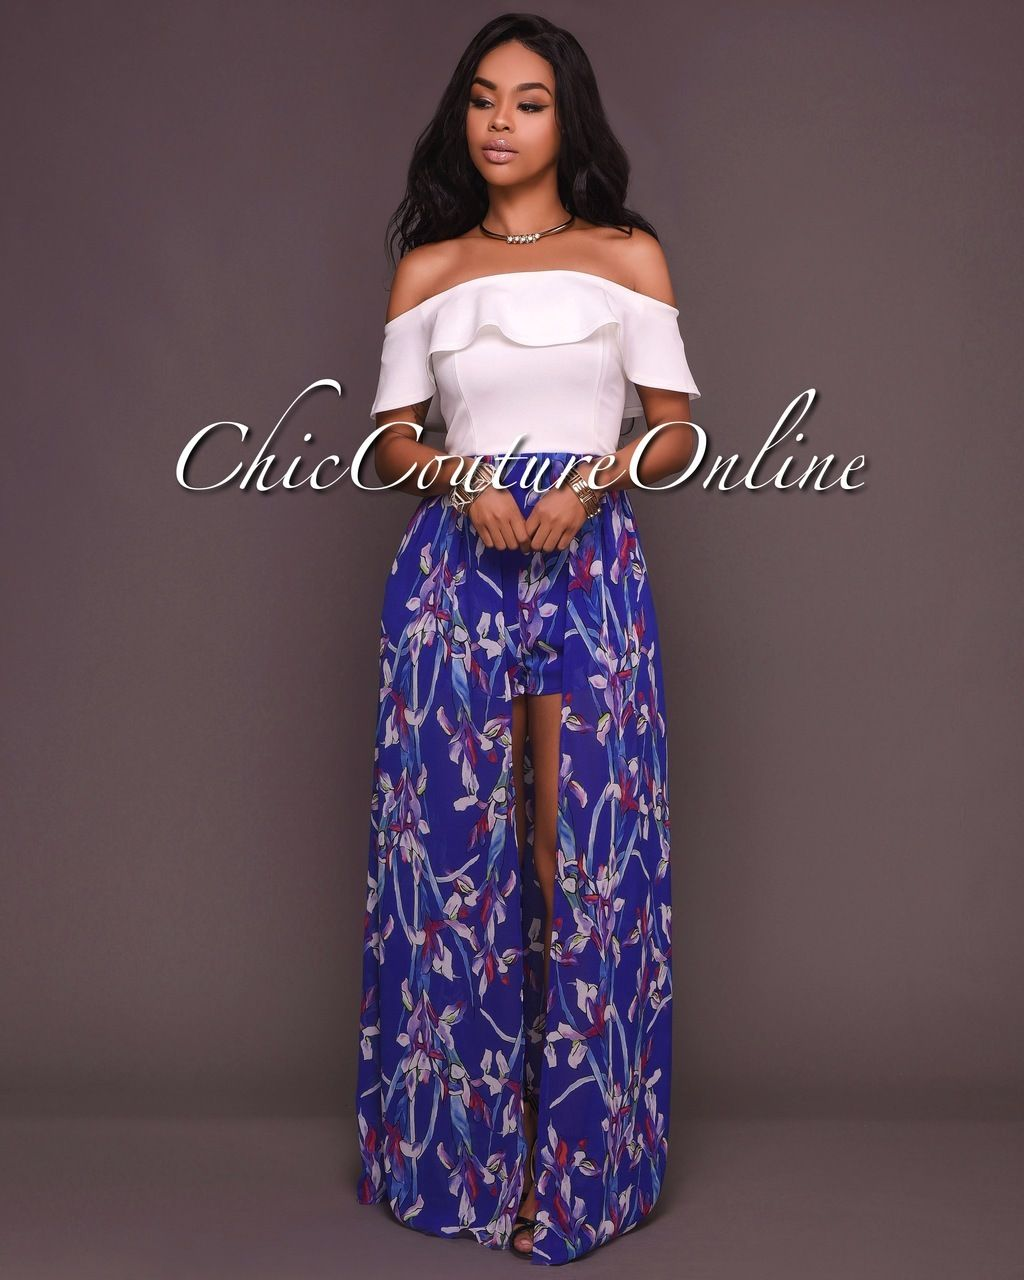 Chic Couture Online - Melika White Blue Floral Print Romper Maxi ...